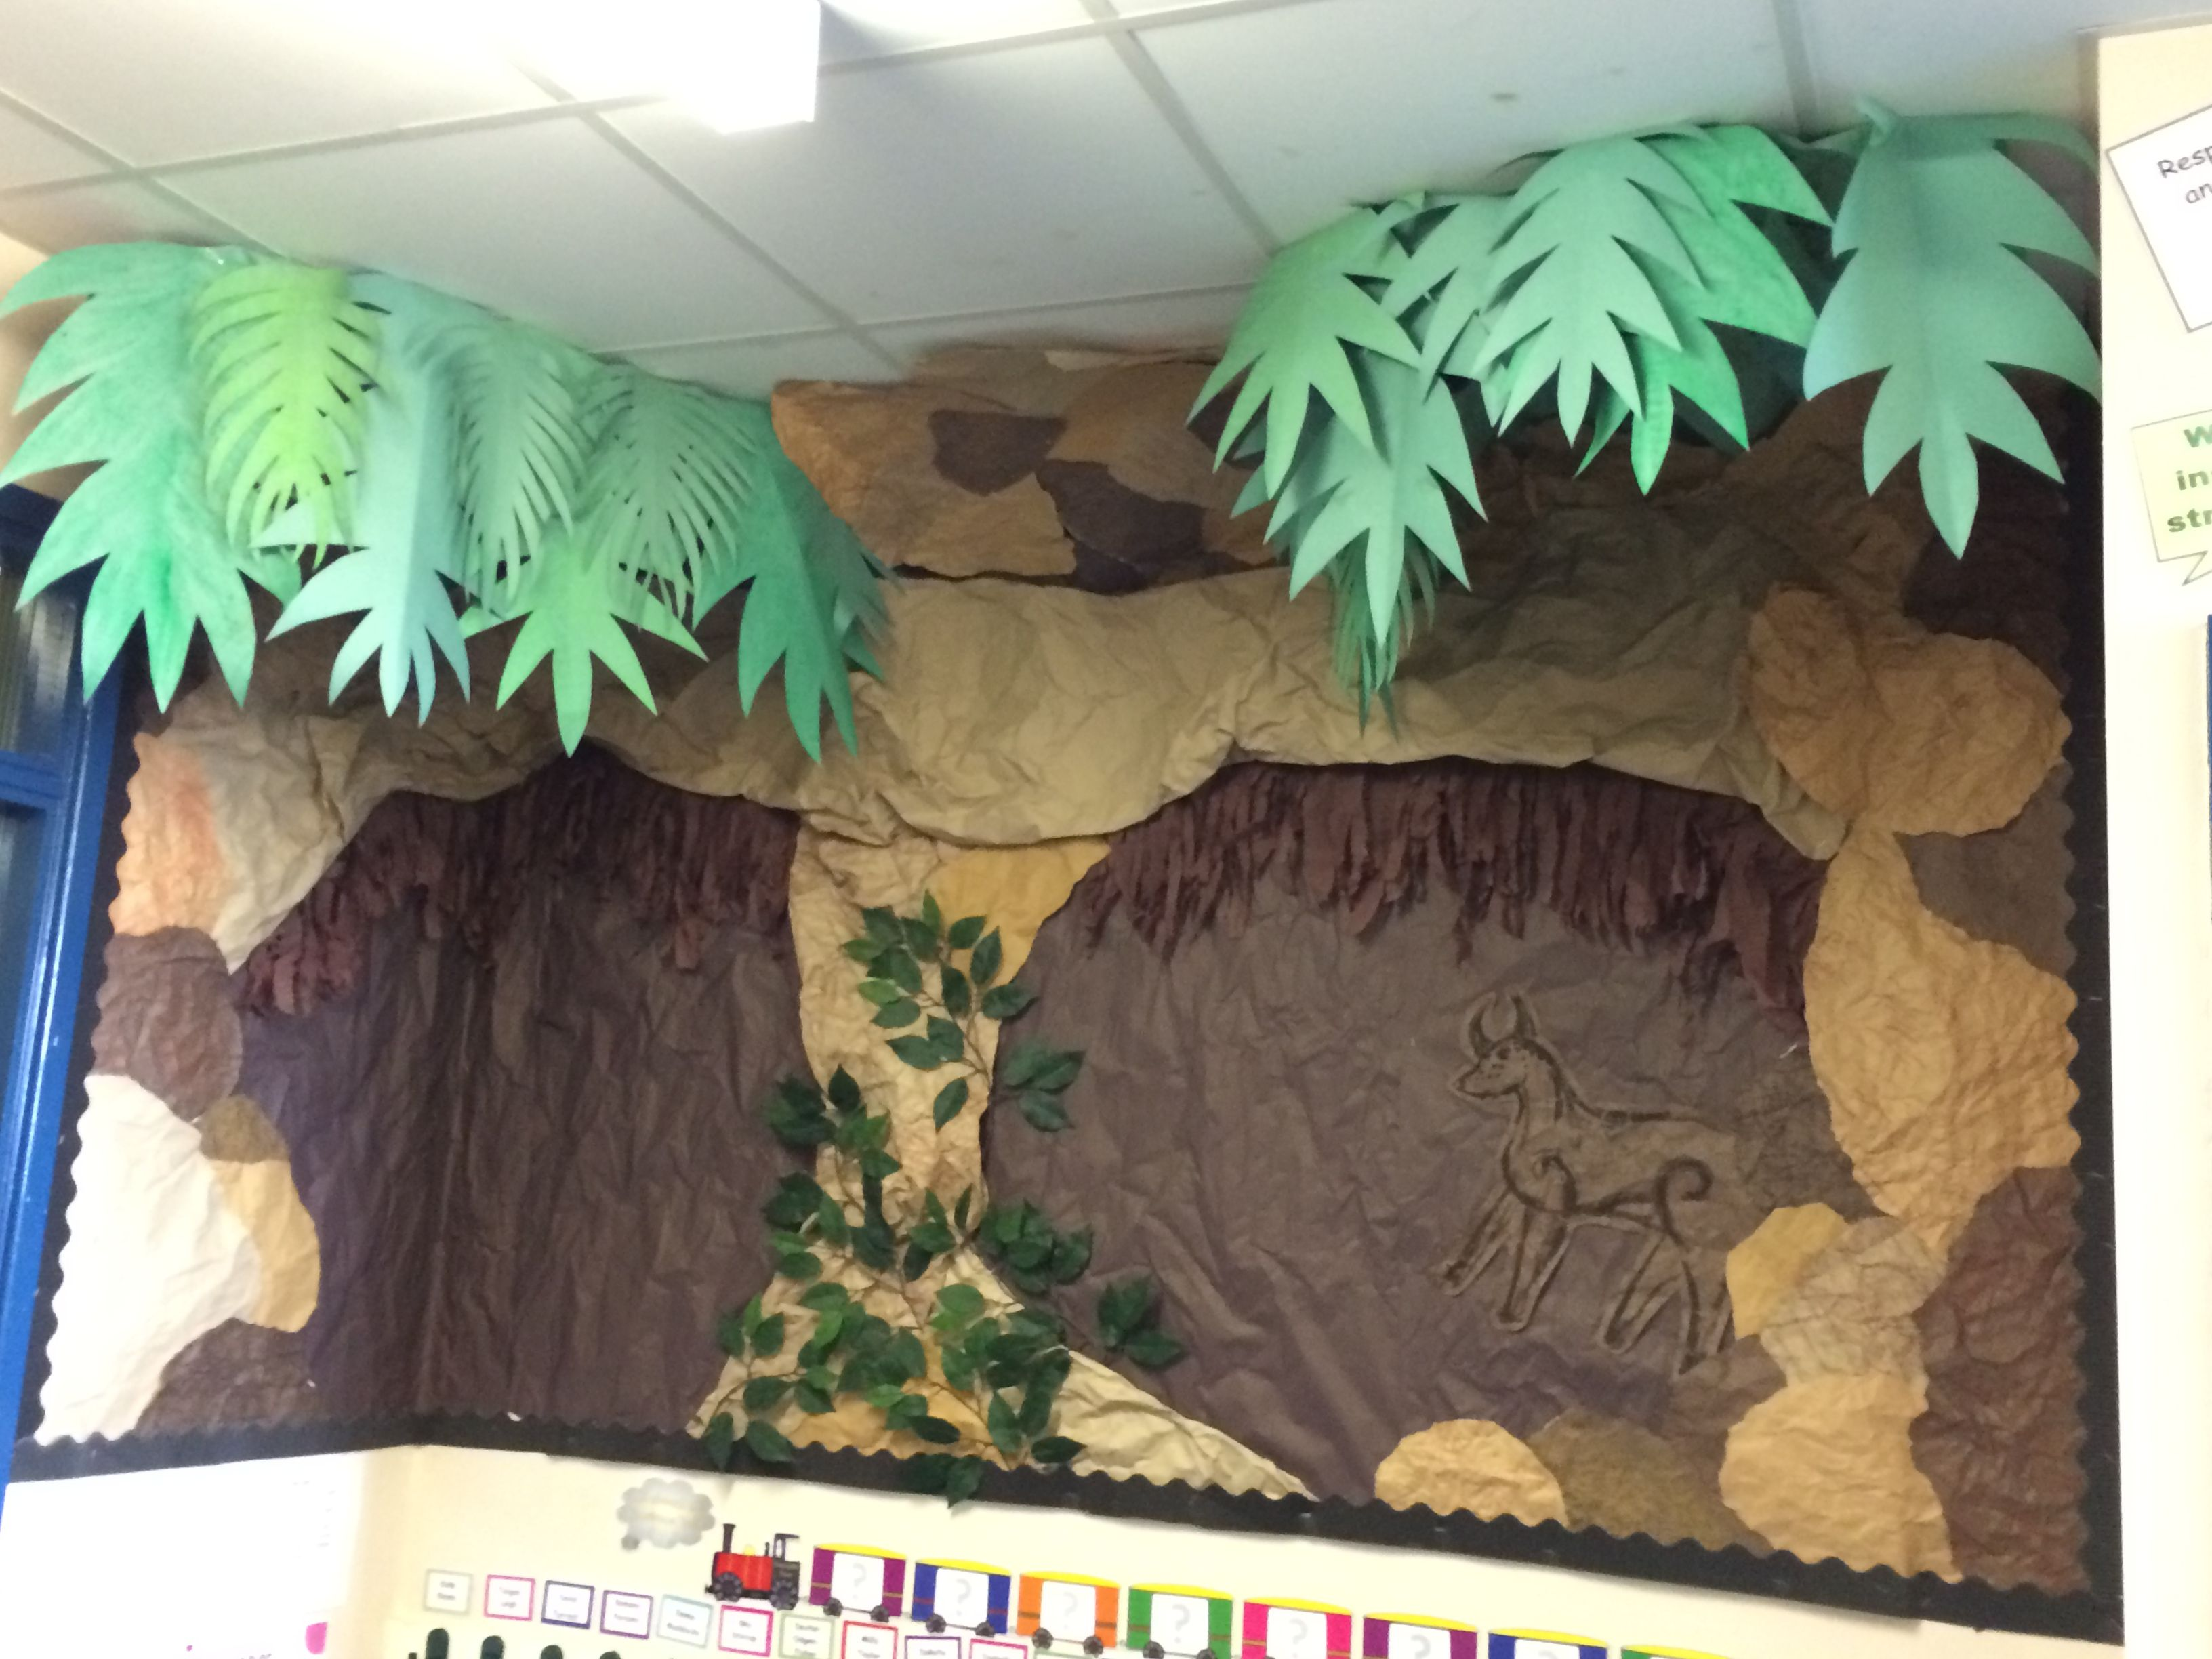 Cavemen stone age display proyecto prehistoria for Soil facts ks2